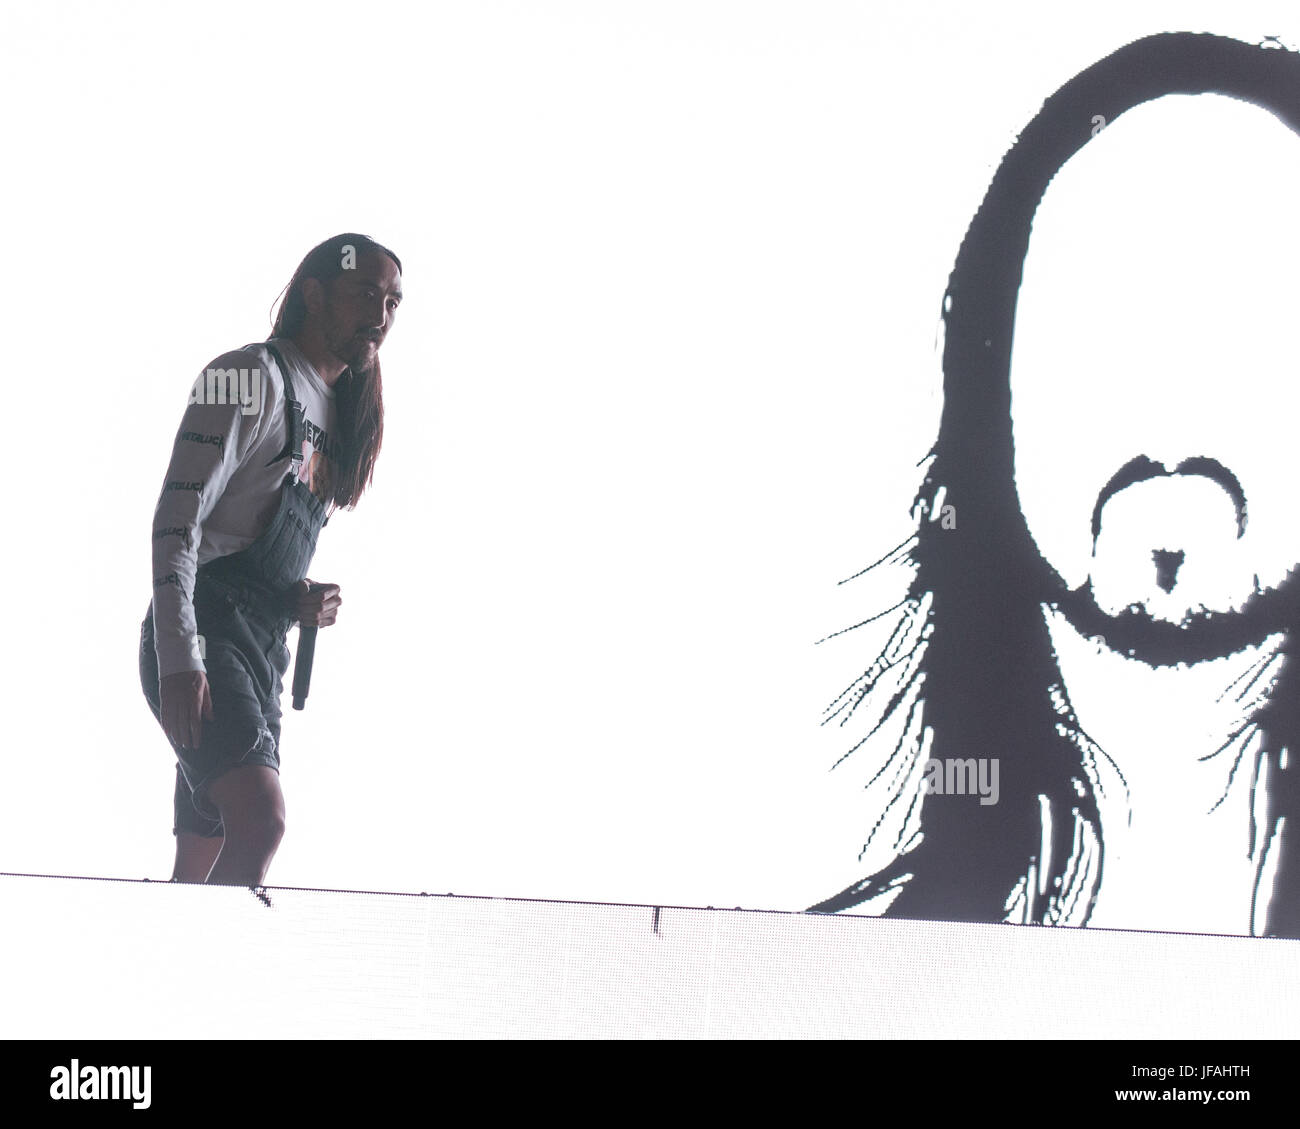 Milwaukee, Wisconsin, USA. 29th June, 2017. STEVE AOKI performs live at Henry Maier Festival Park during Summerfest - Stock Image